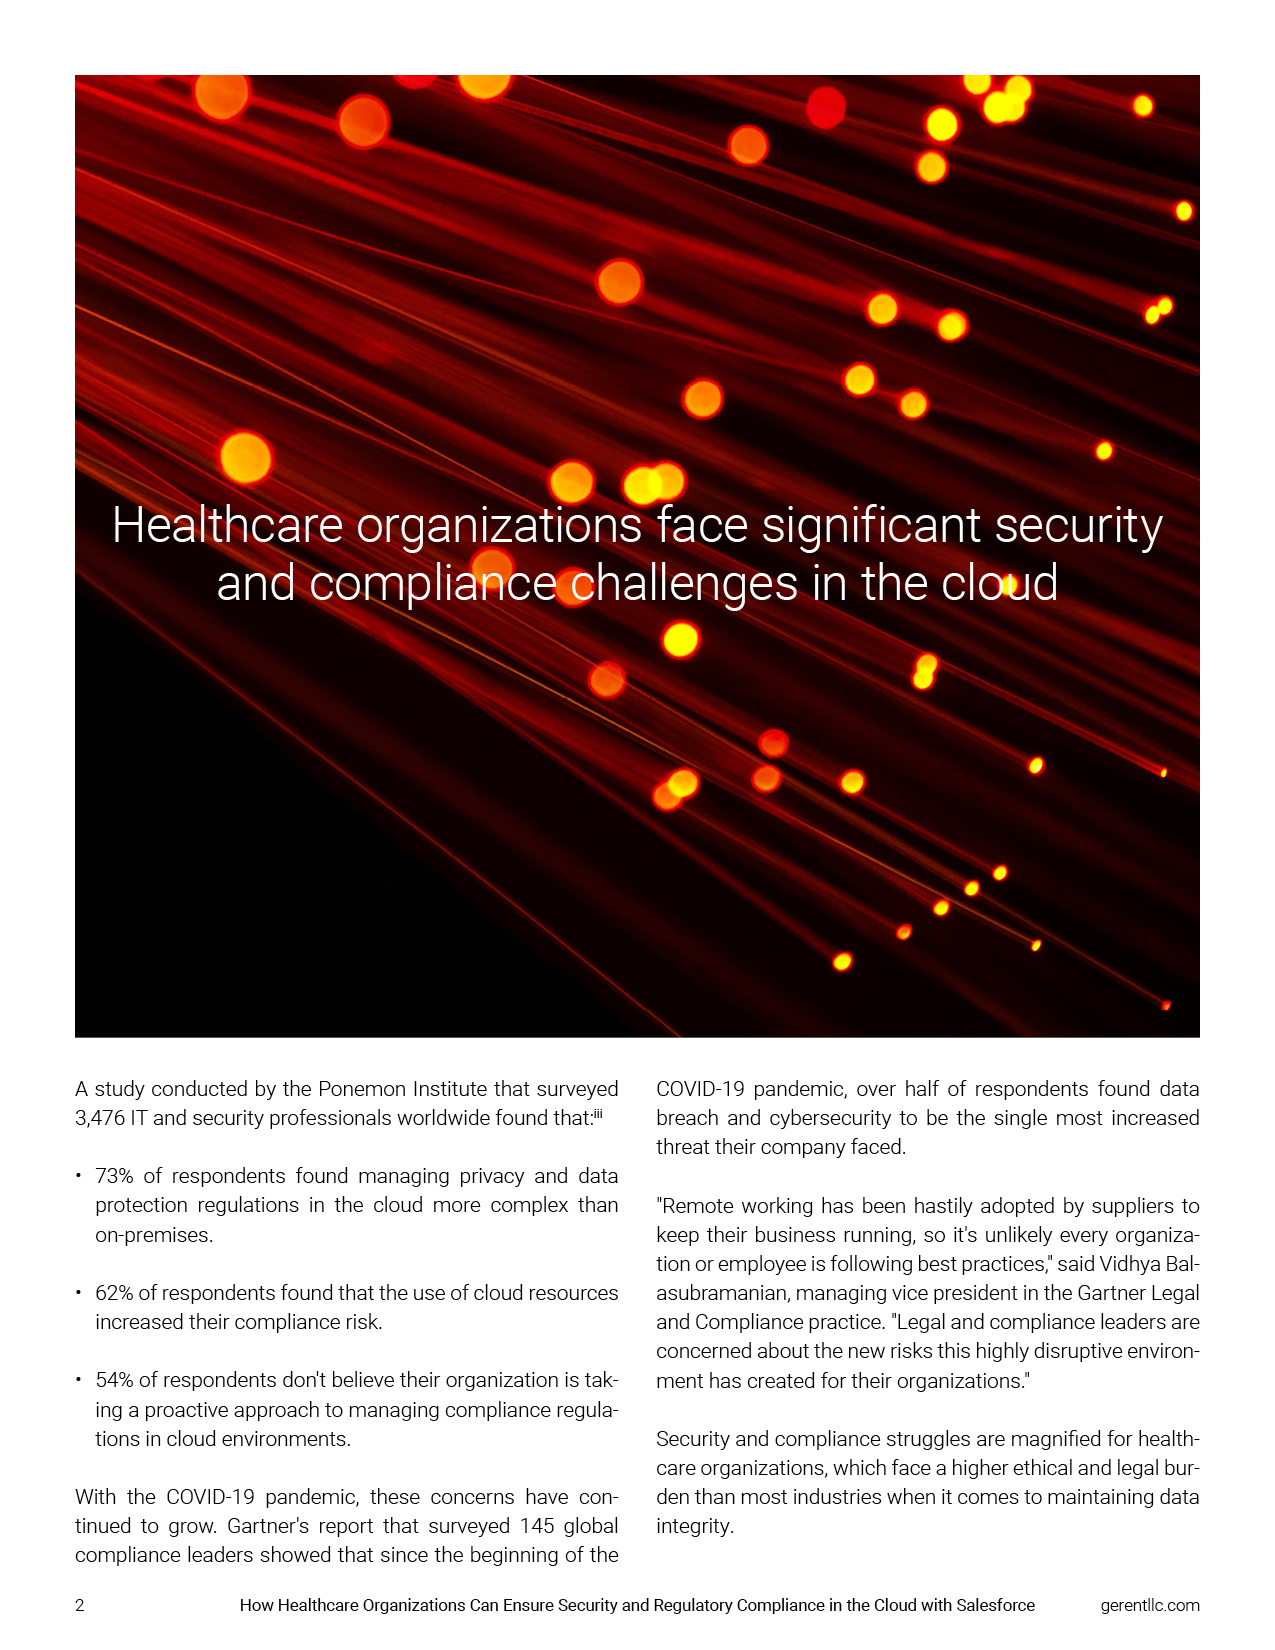 How Healthcare Organizations Can Ensure Security and Regulatory Compliance in the Cloud with Salesforce Left